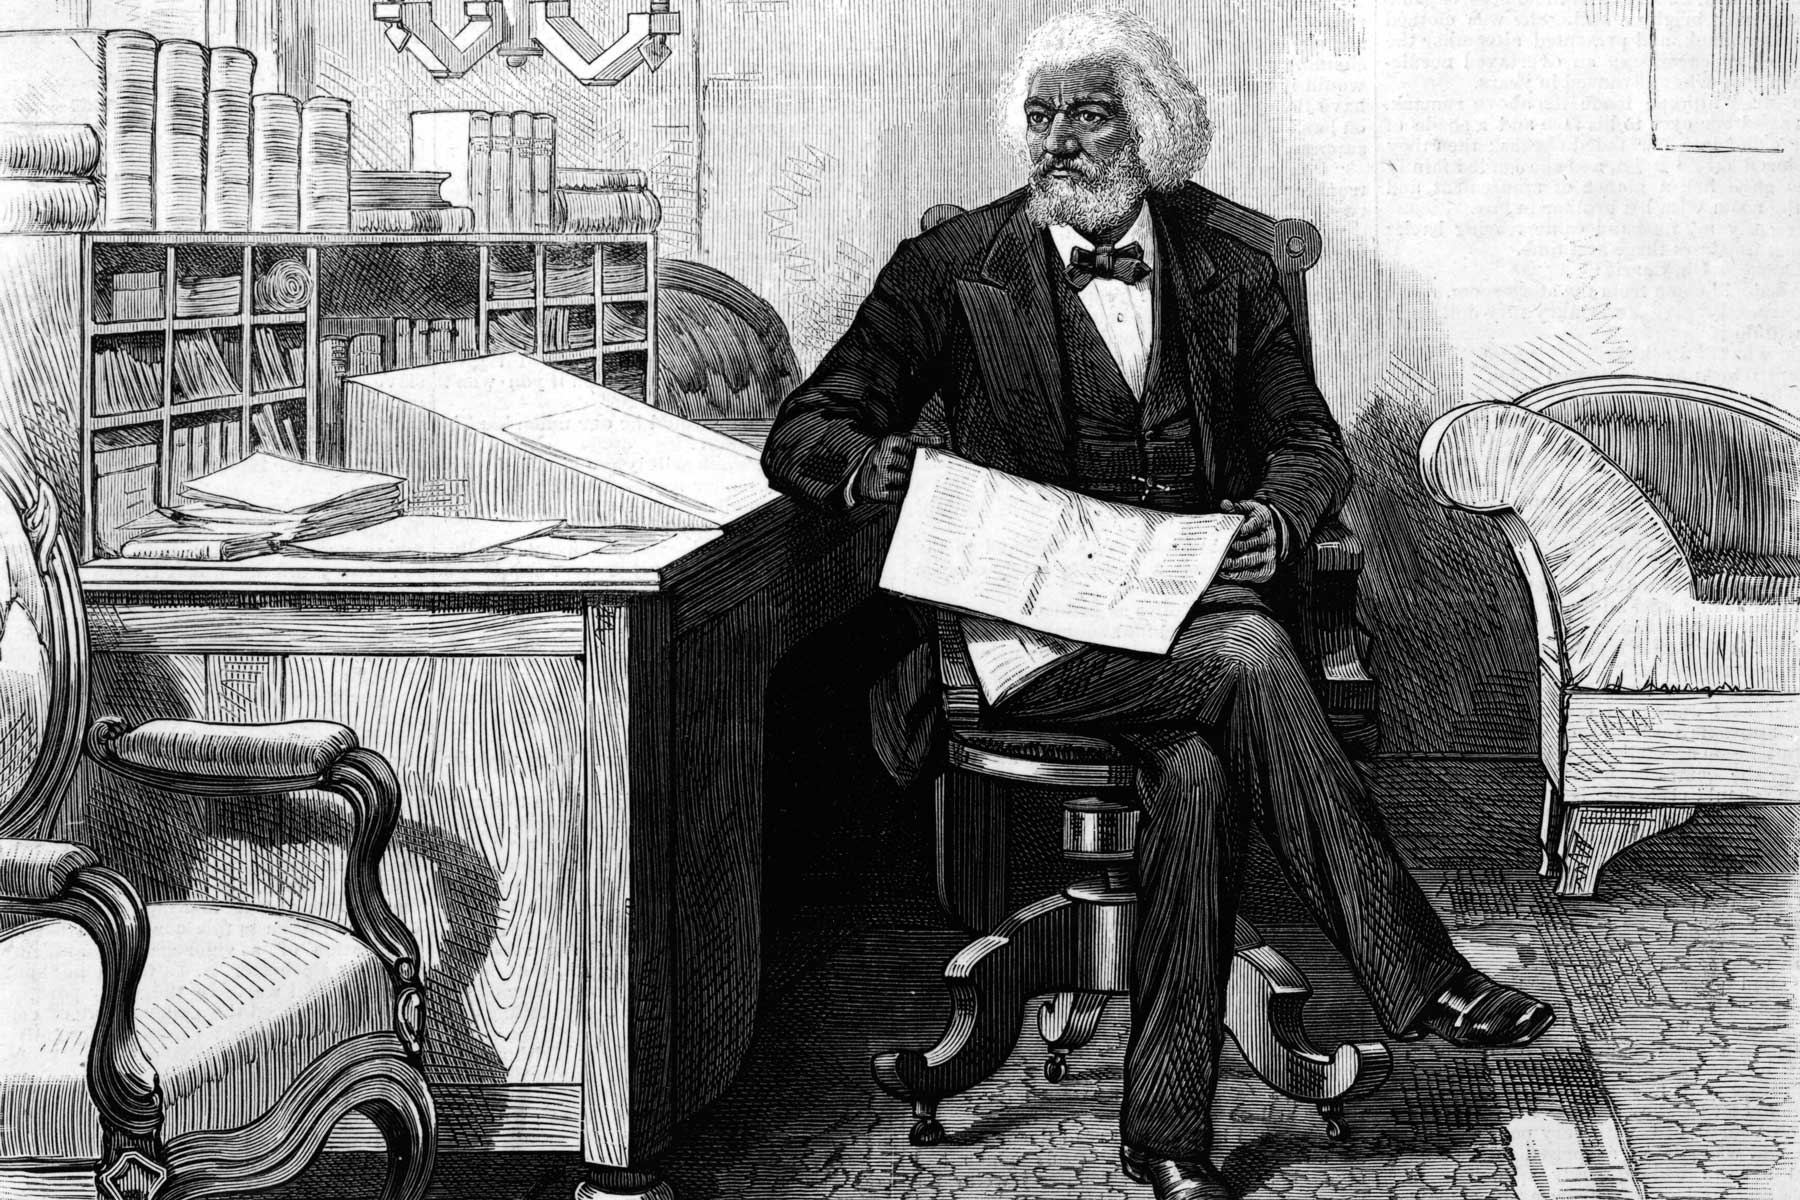 Illustration of Abolitionist Frederick Douglass Edits Newspaper